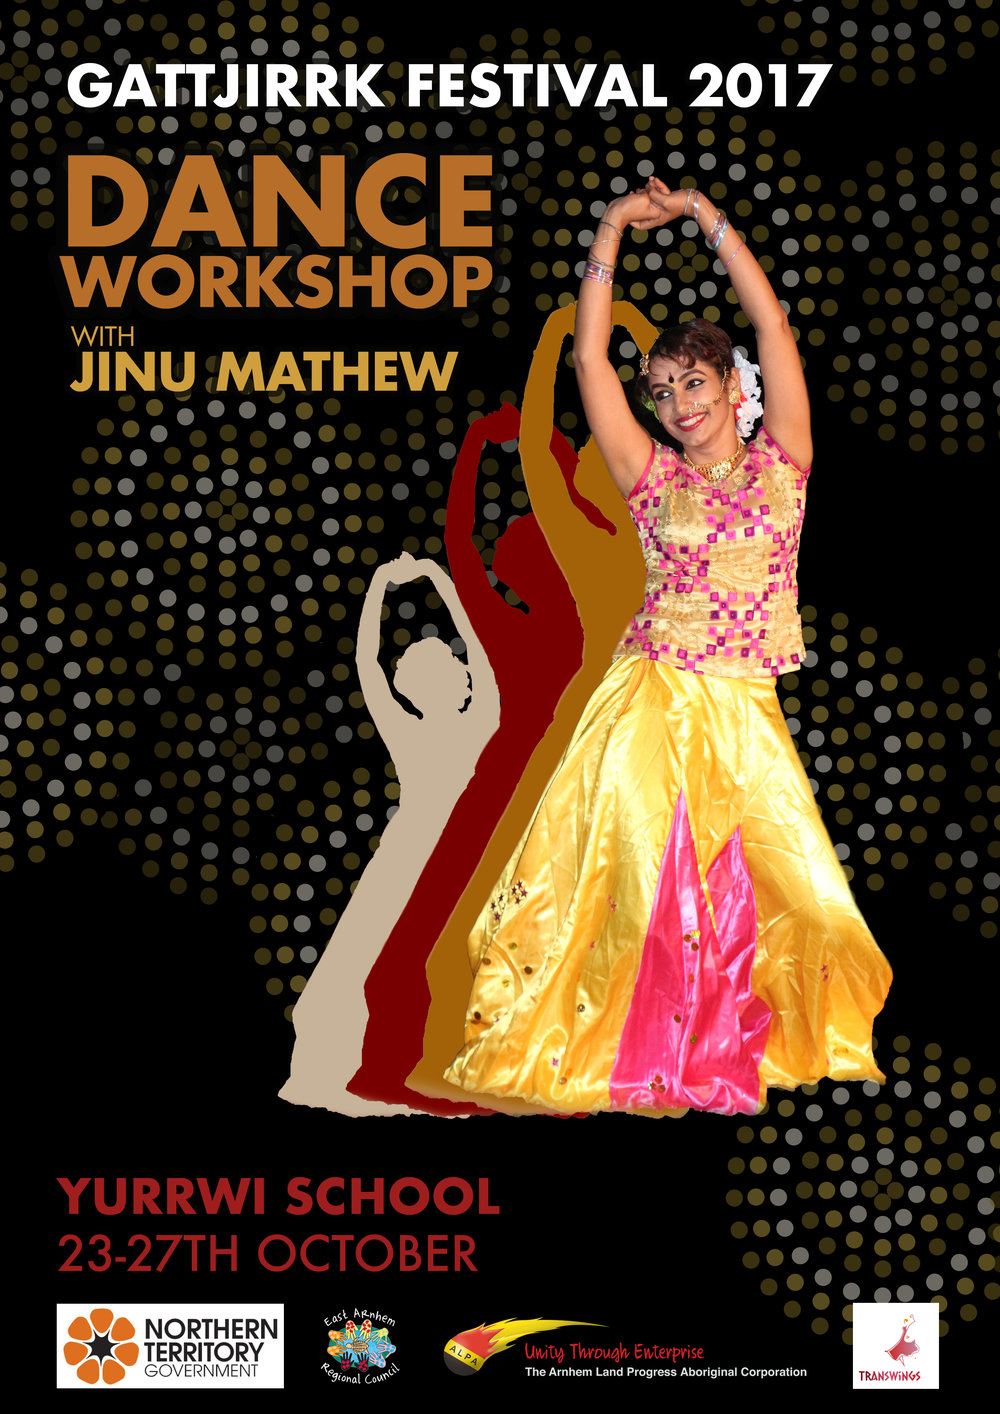 join in the fun - School workshops!